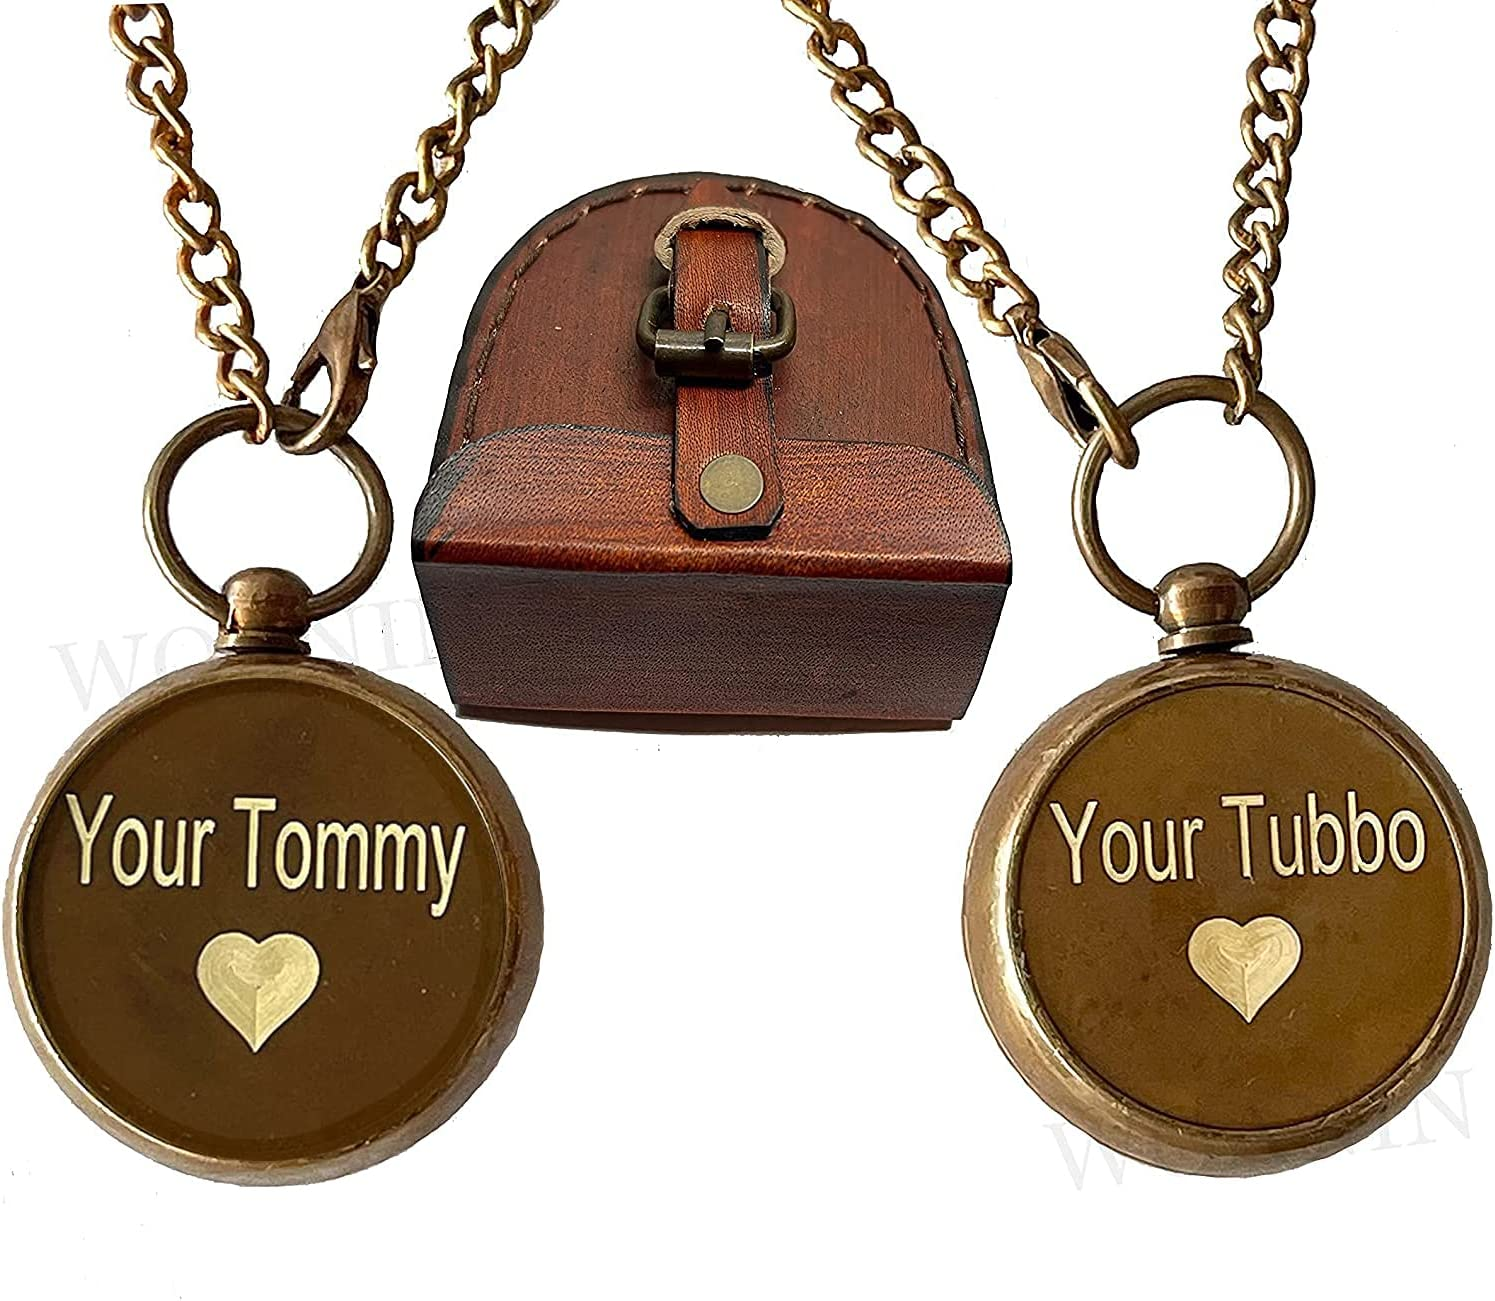 WOANIN Your Tommy overseas Tubbo Locket Necklace Many popular brands Set Pendent Compass